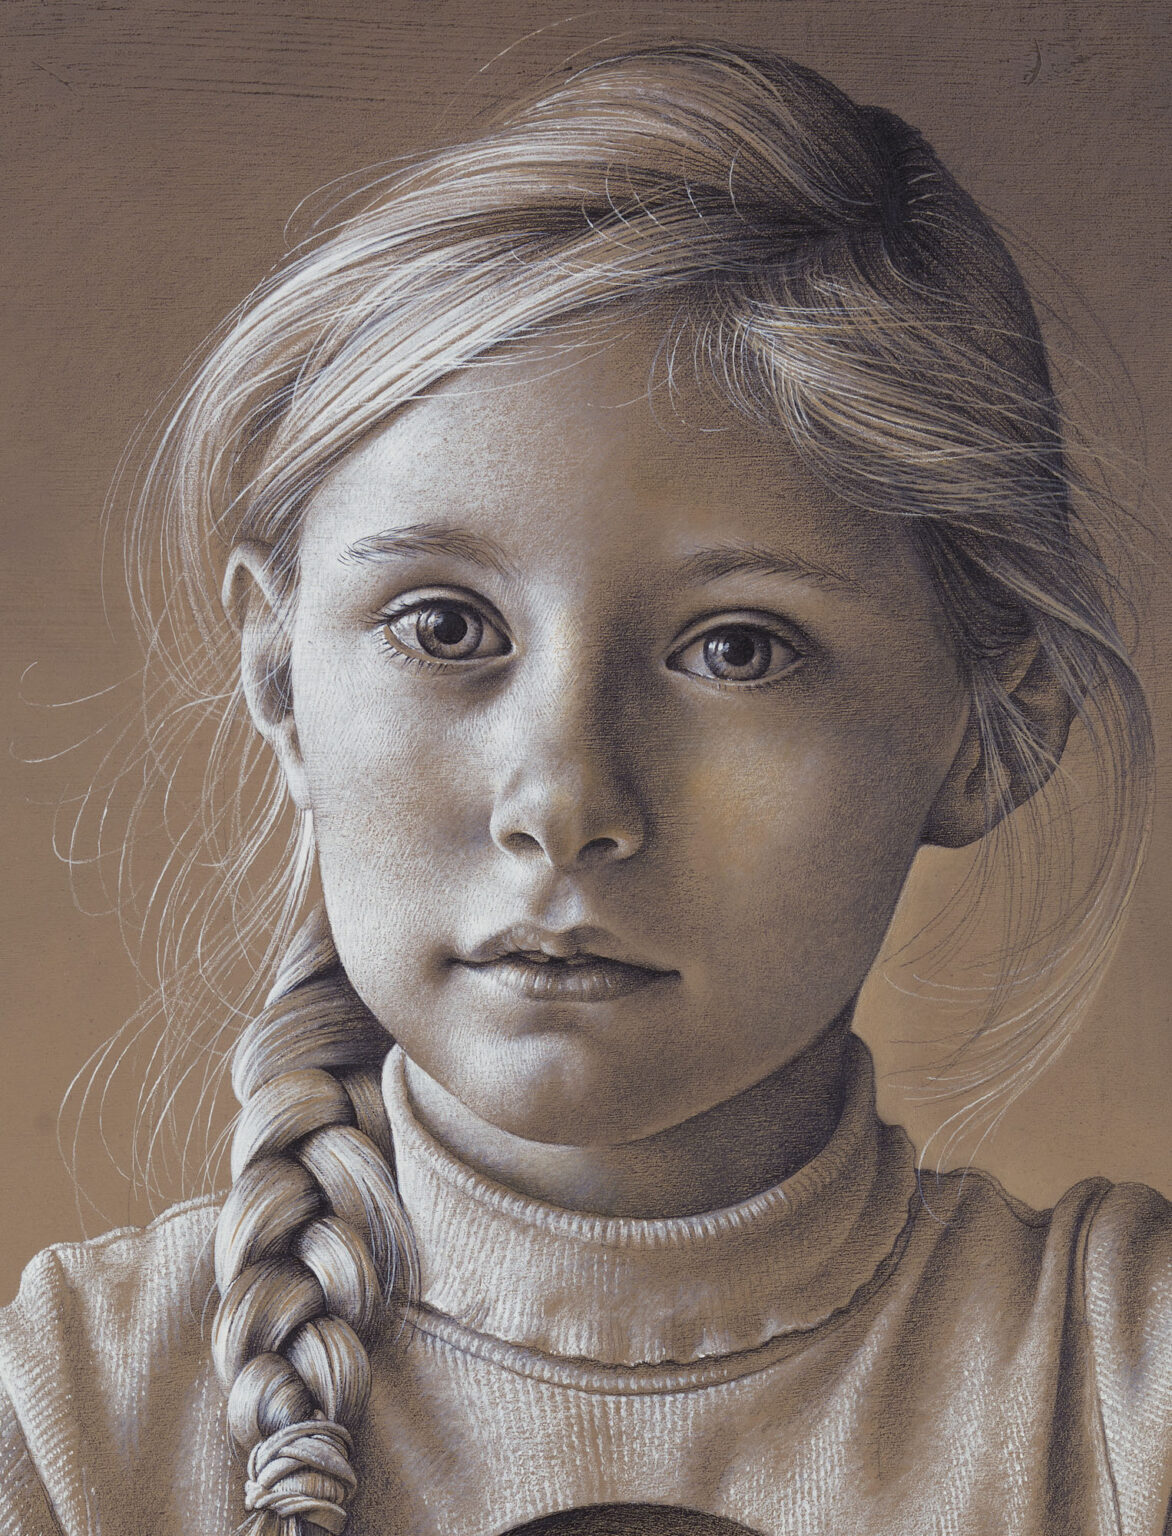 Childhood-Consecration-signed-limited-edition-print-detail 1-Miriam-Escofet